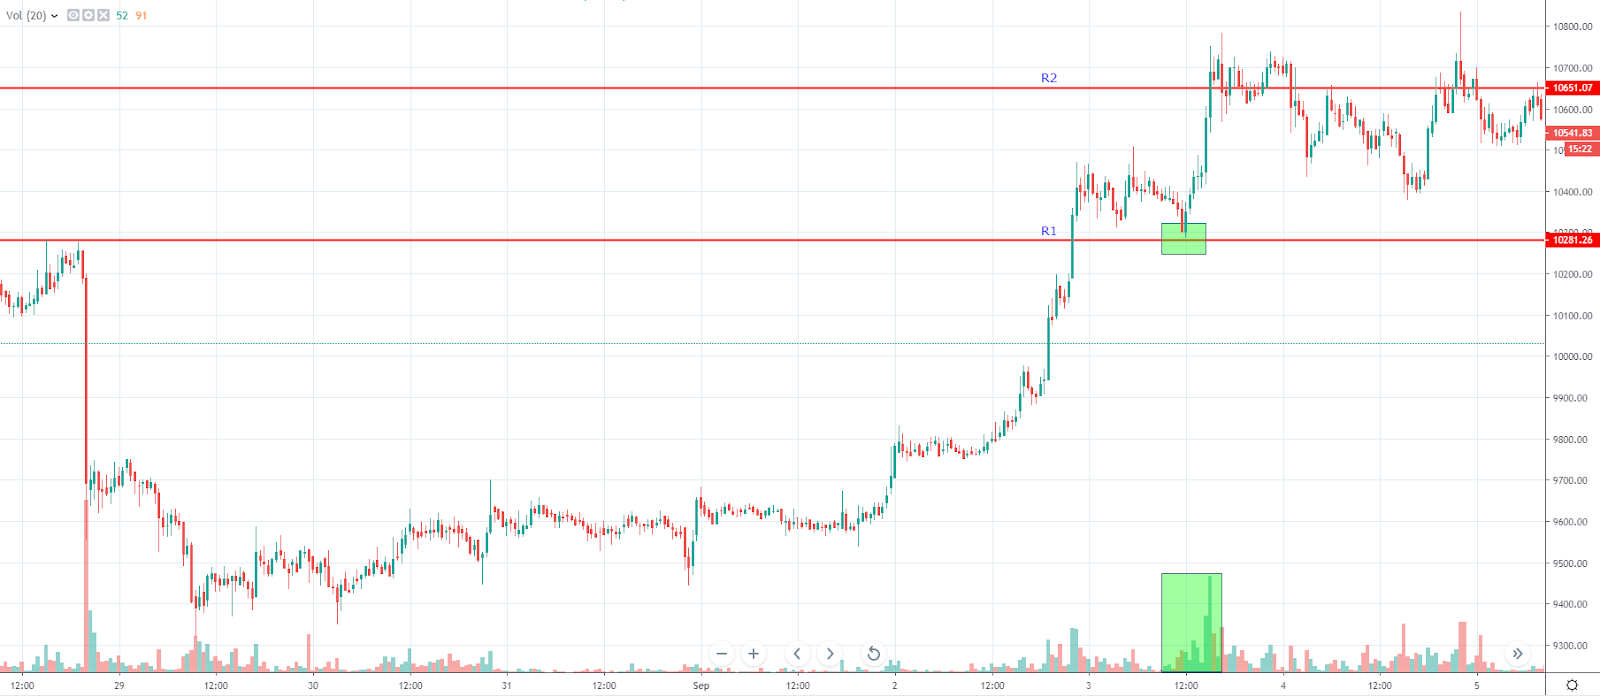 Retest daily trading strategy sample (Source: TradingView)